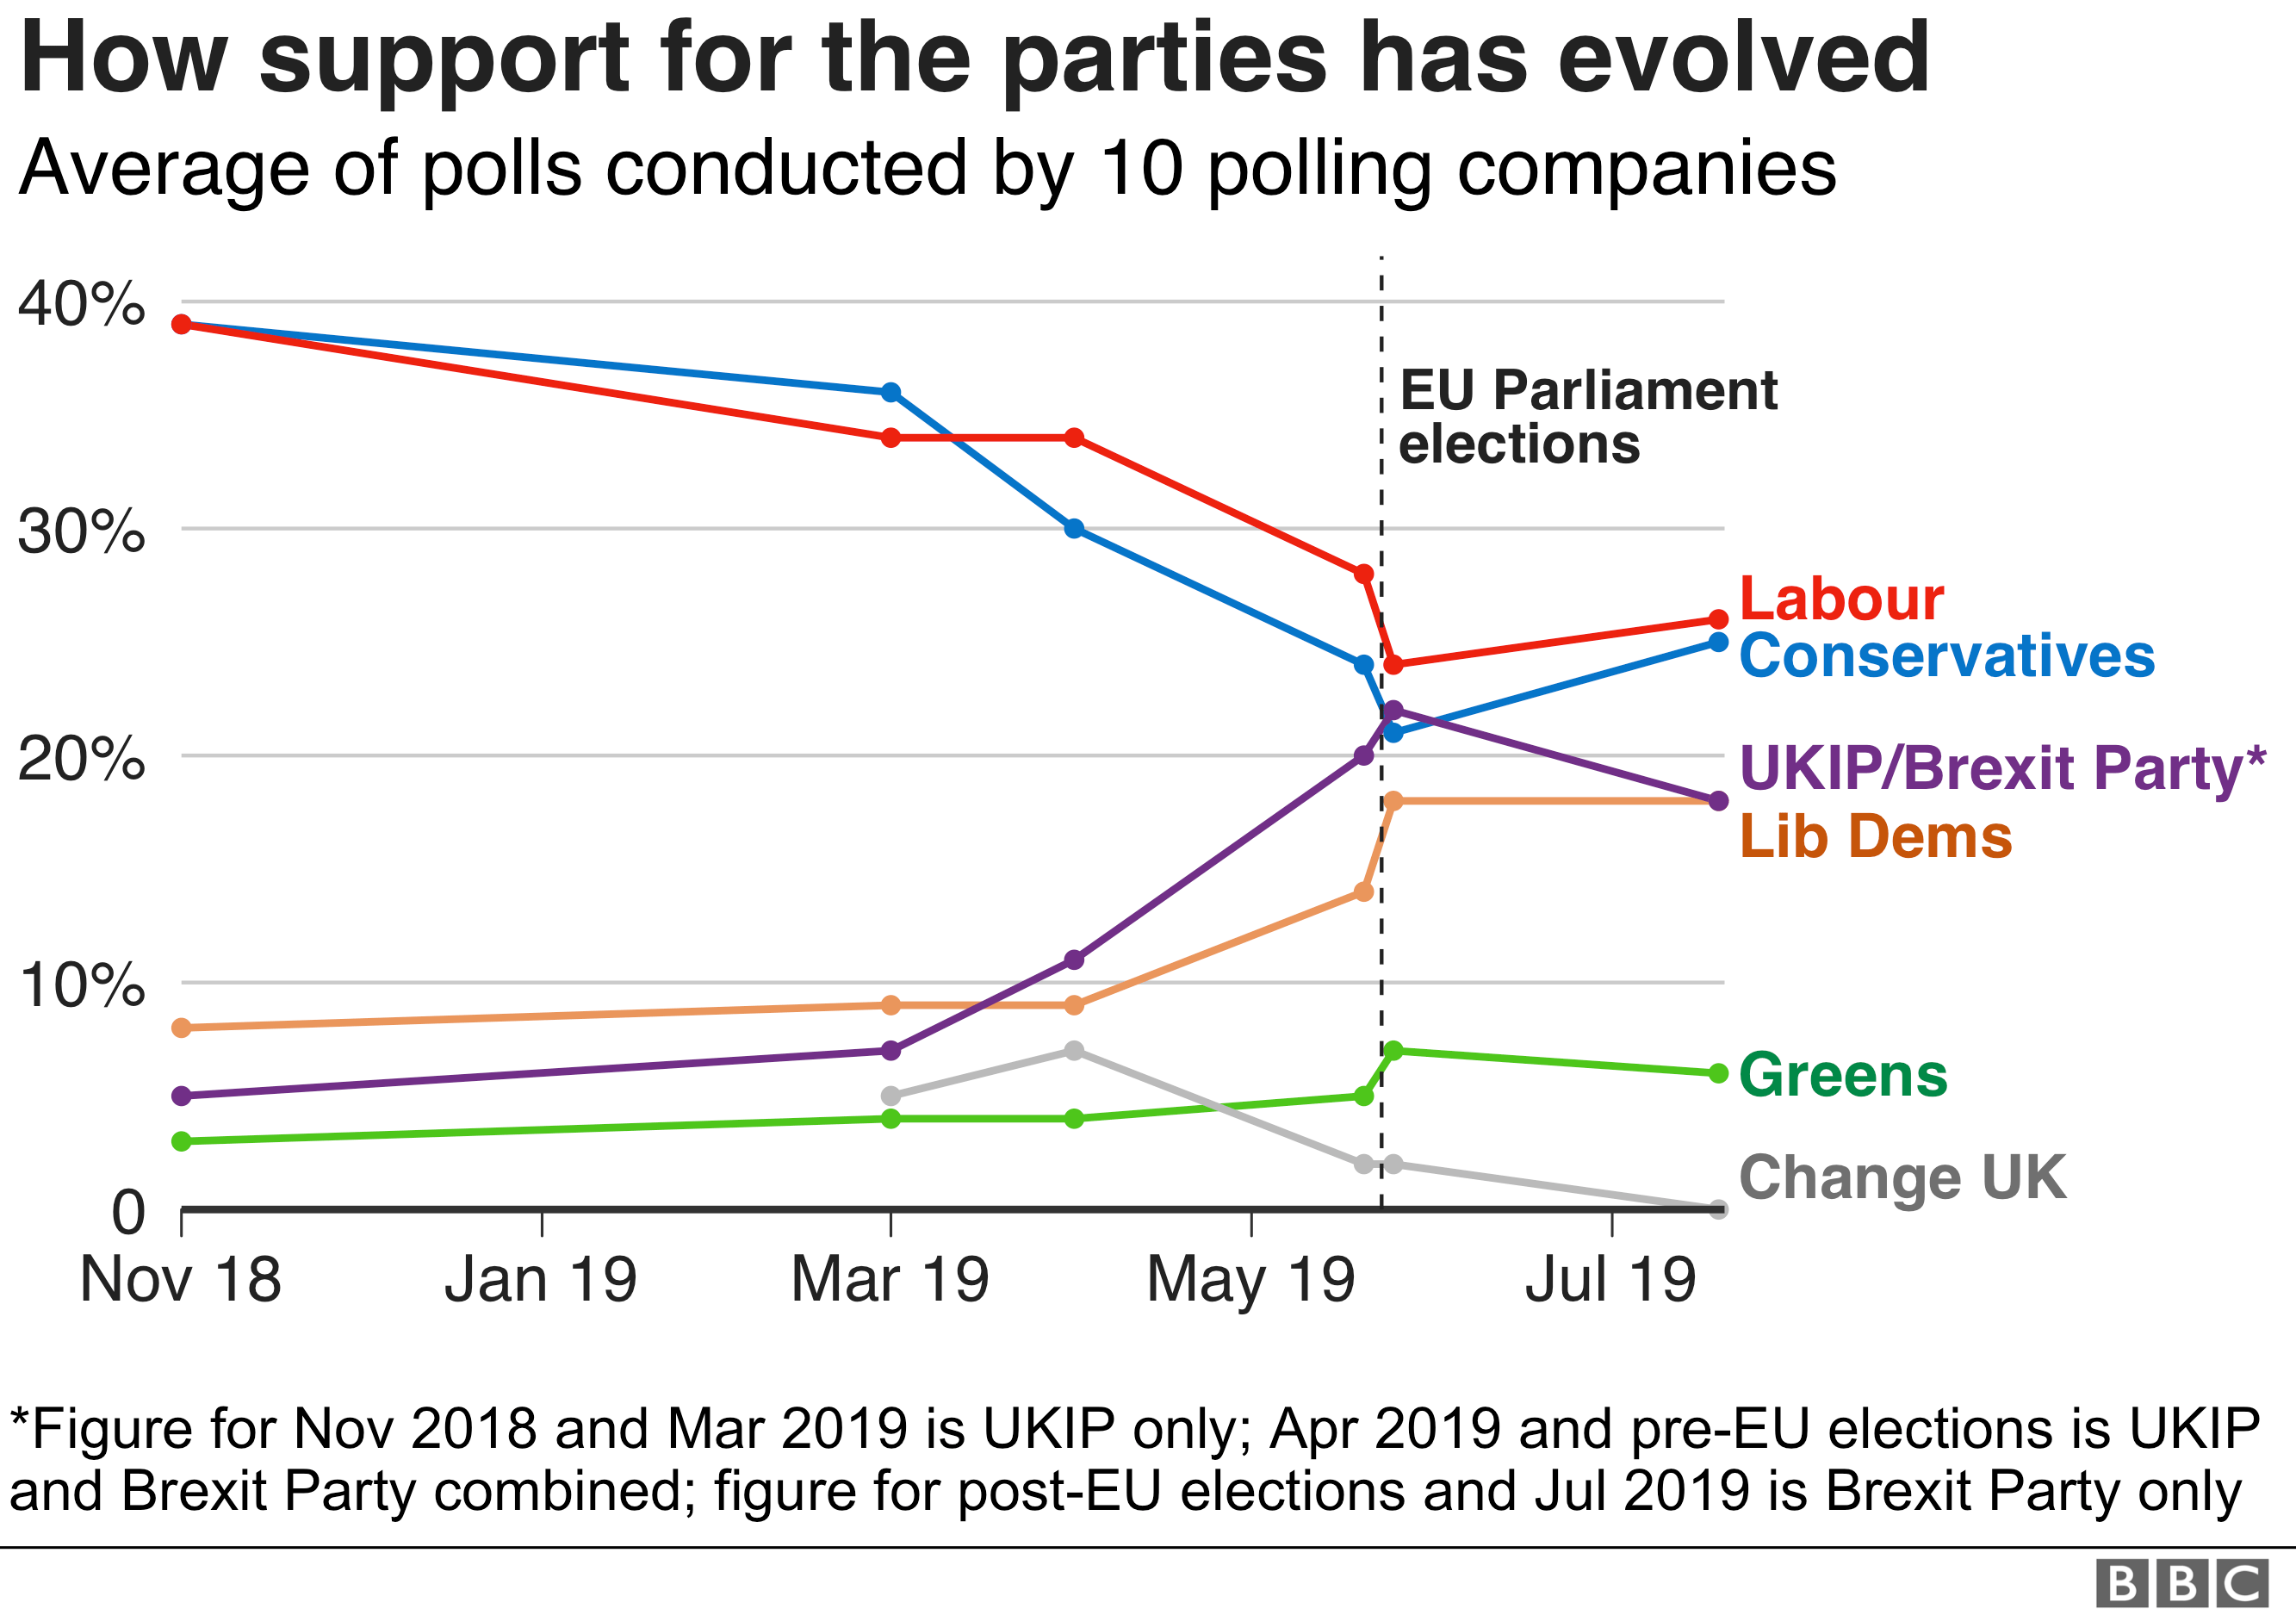 Voting intention by party